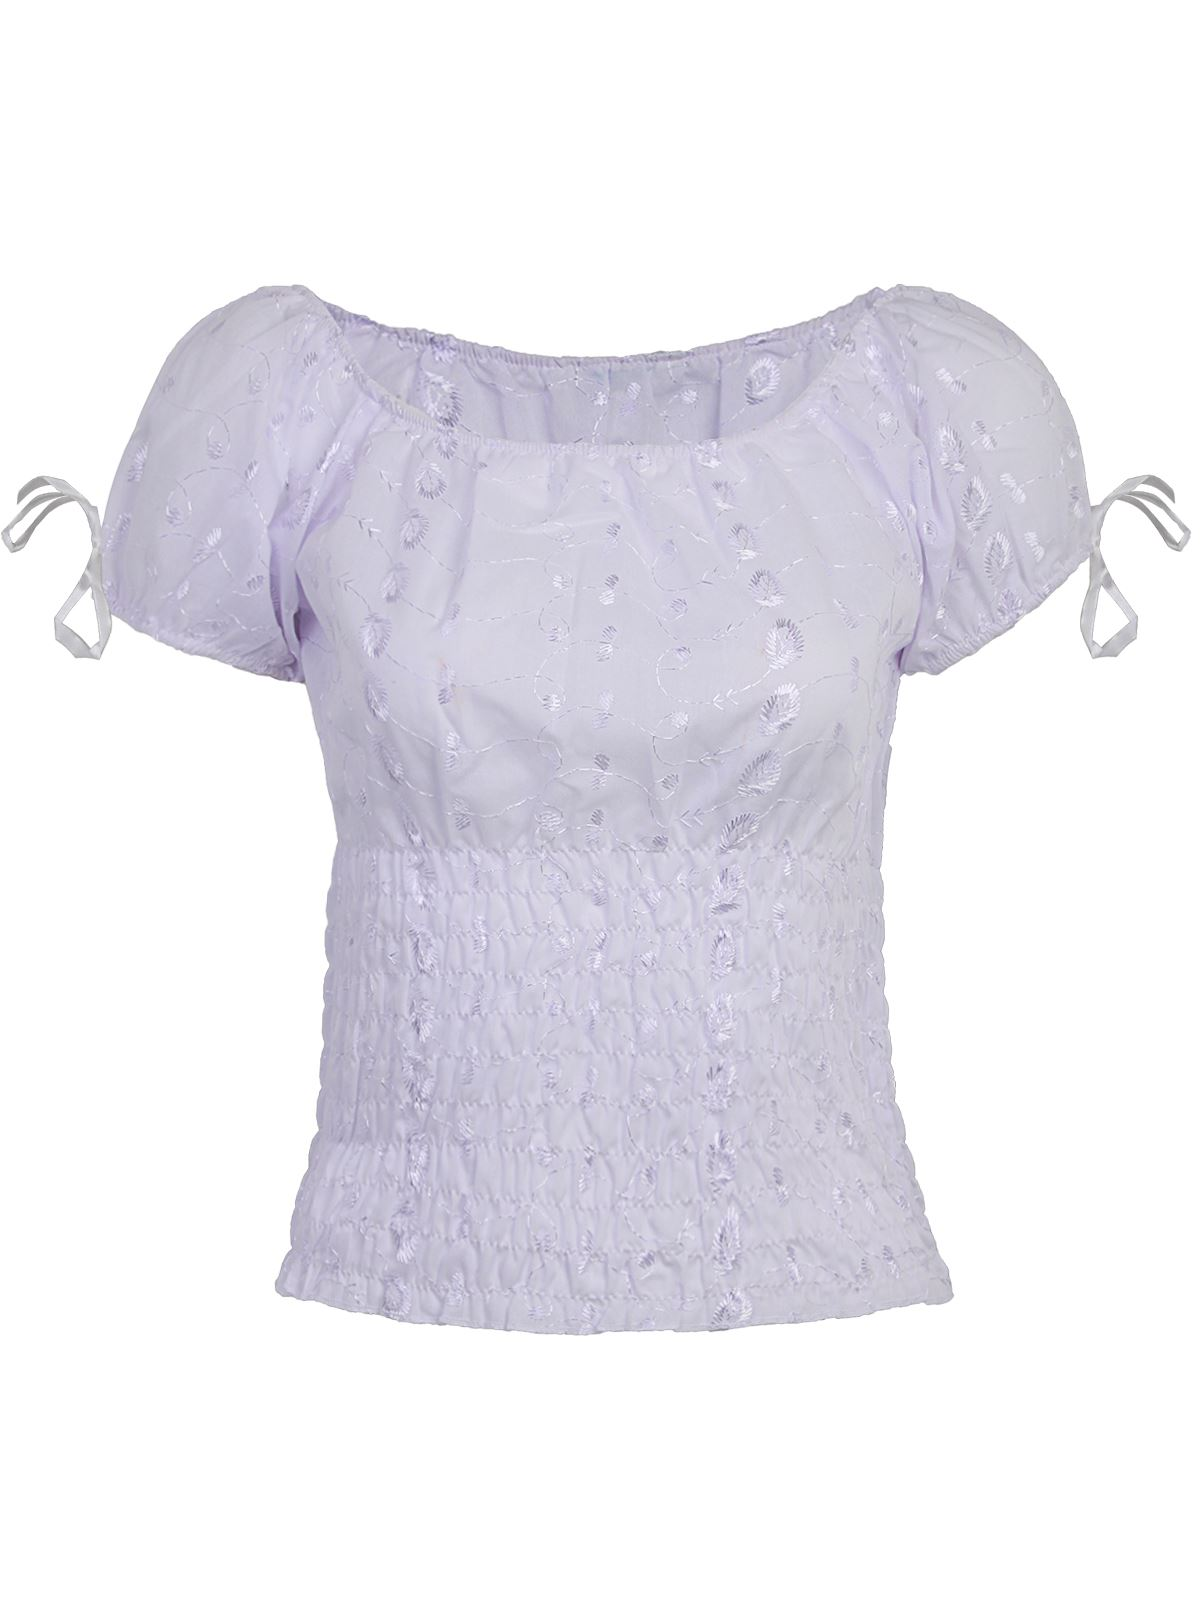 Ladies womens white gypsy top floral embroidered blouse